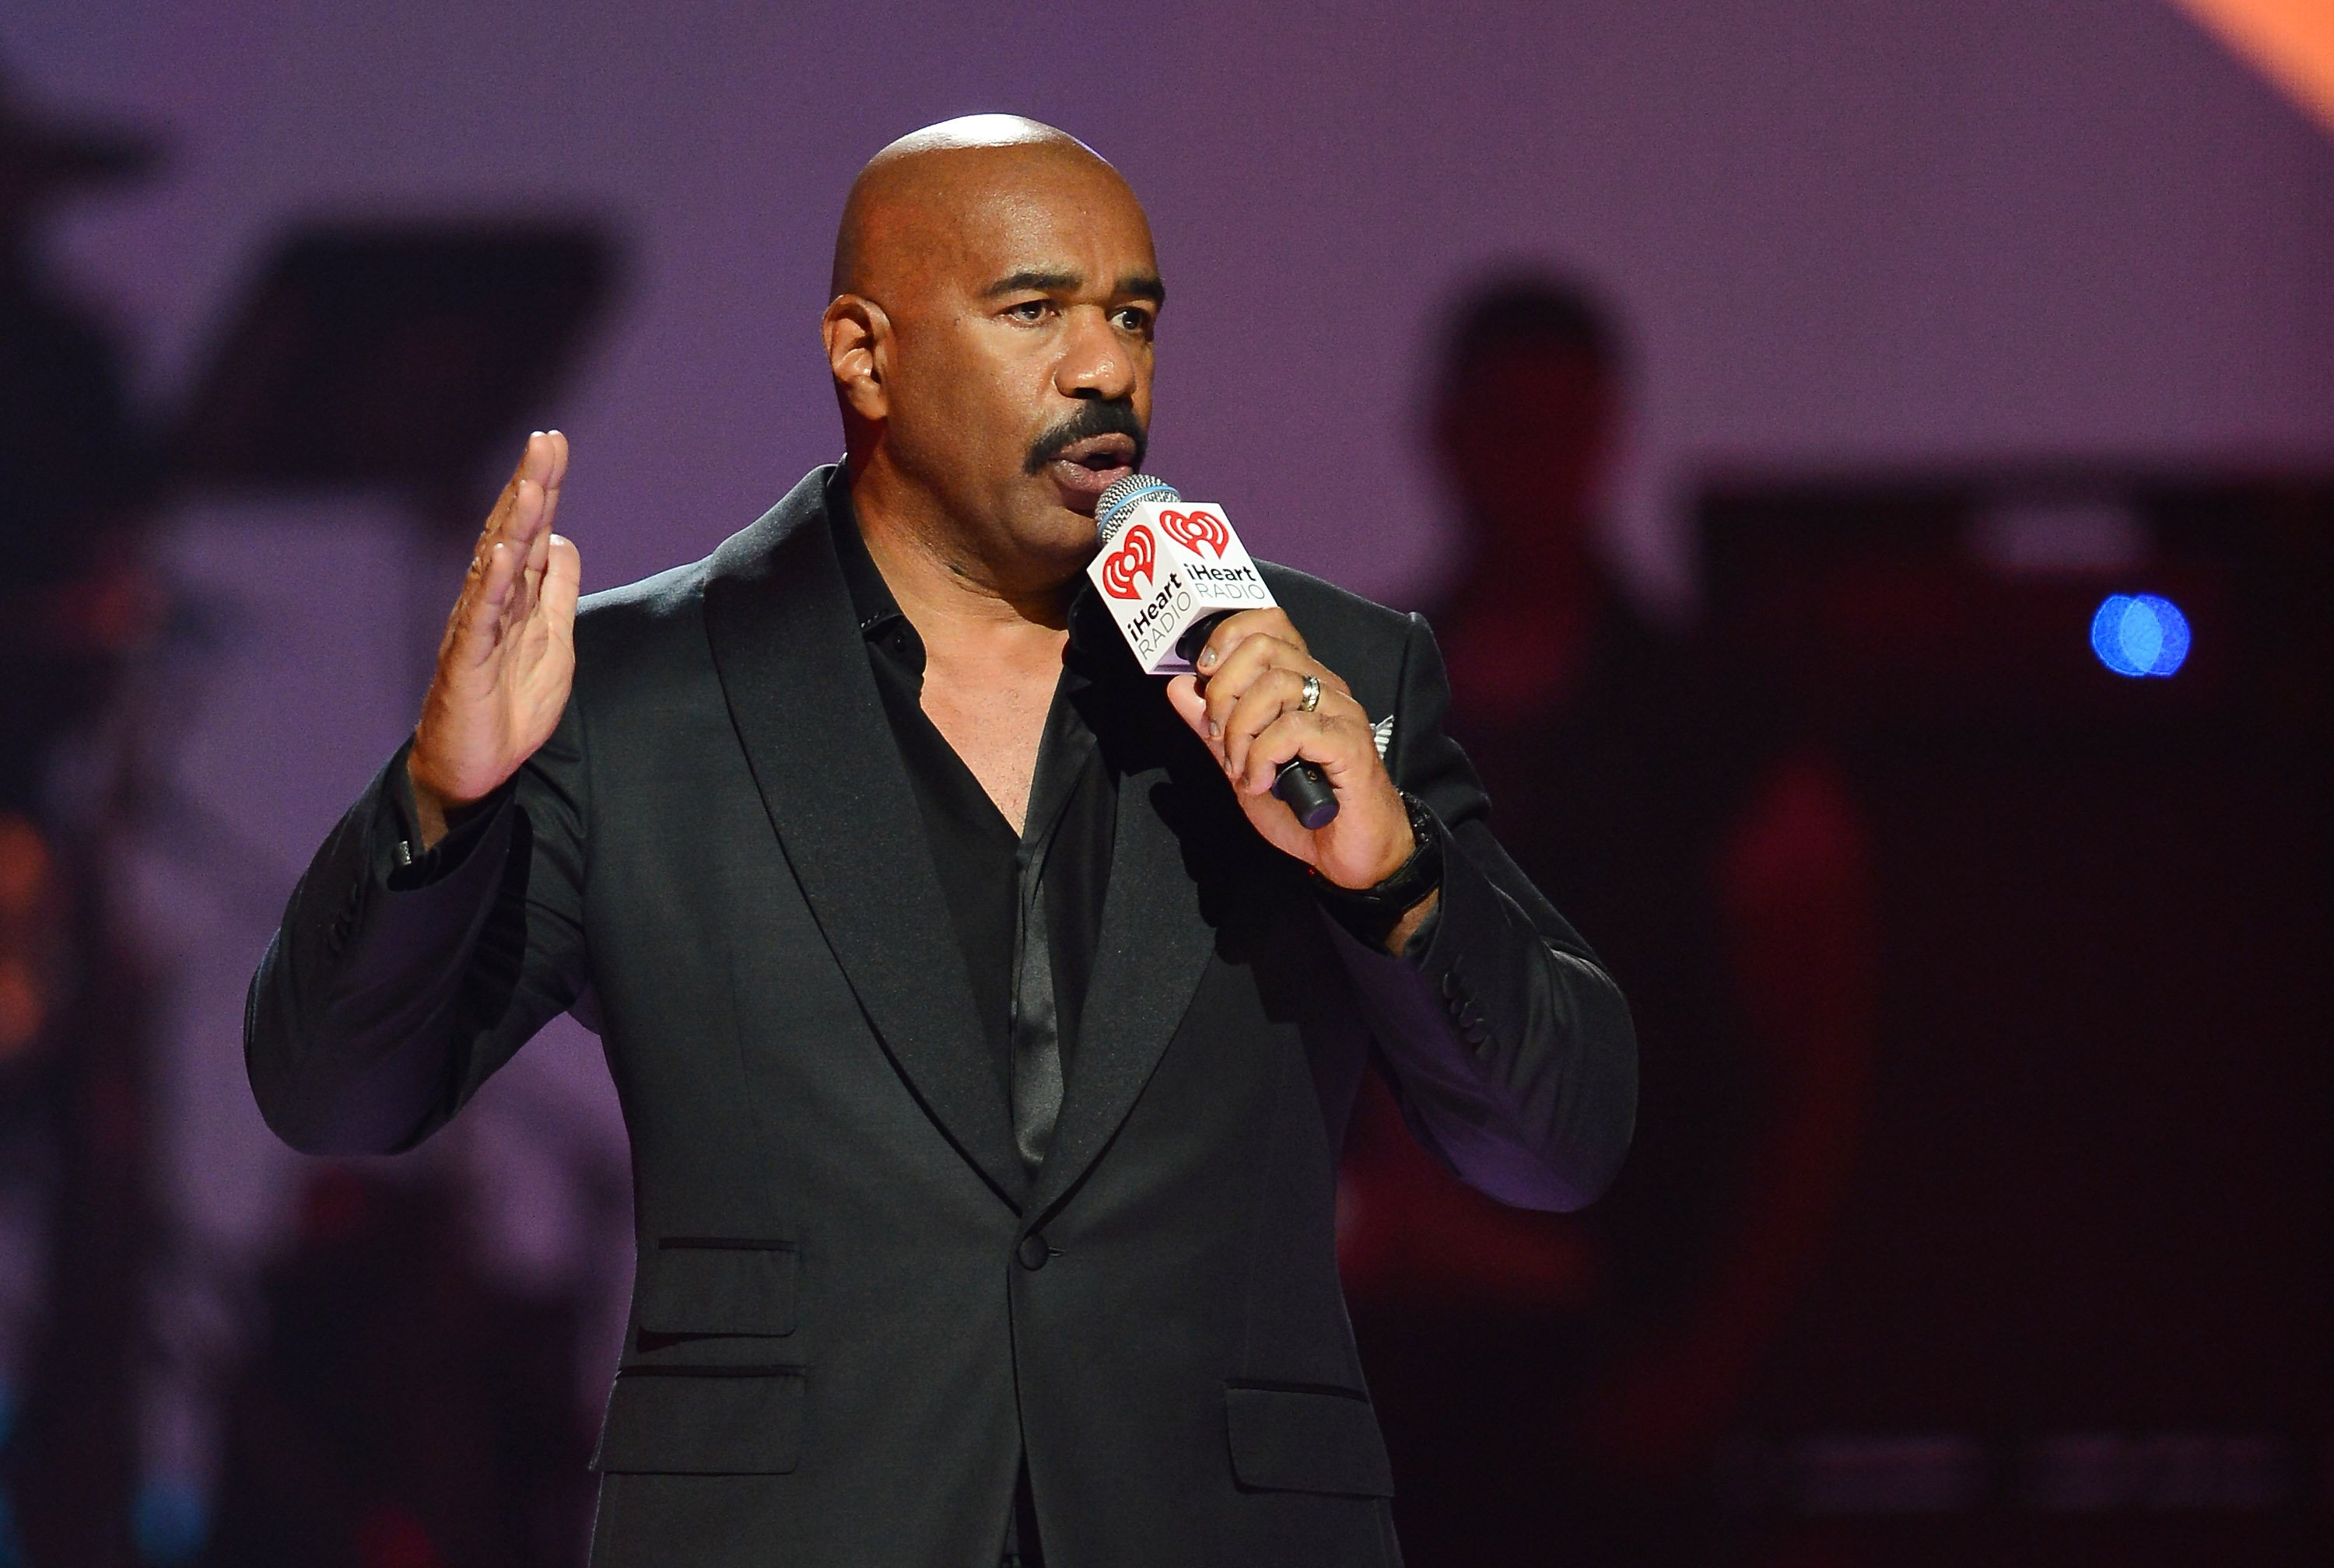 Steve Harvey Image Source: Getty Images.